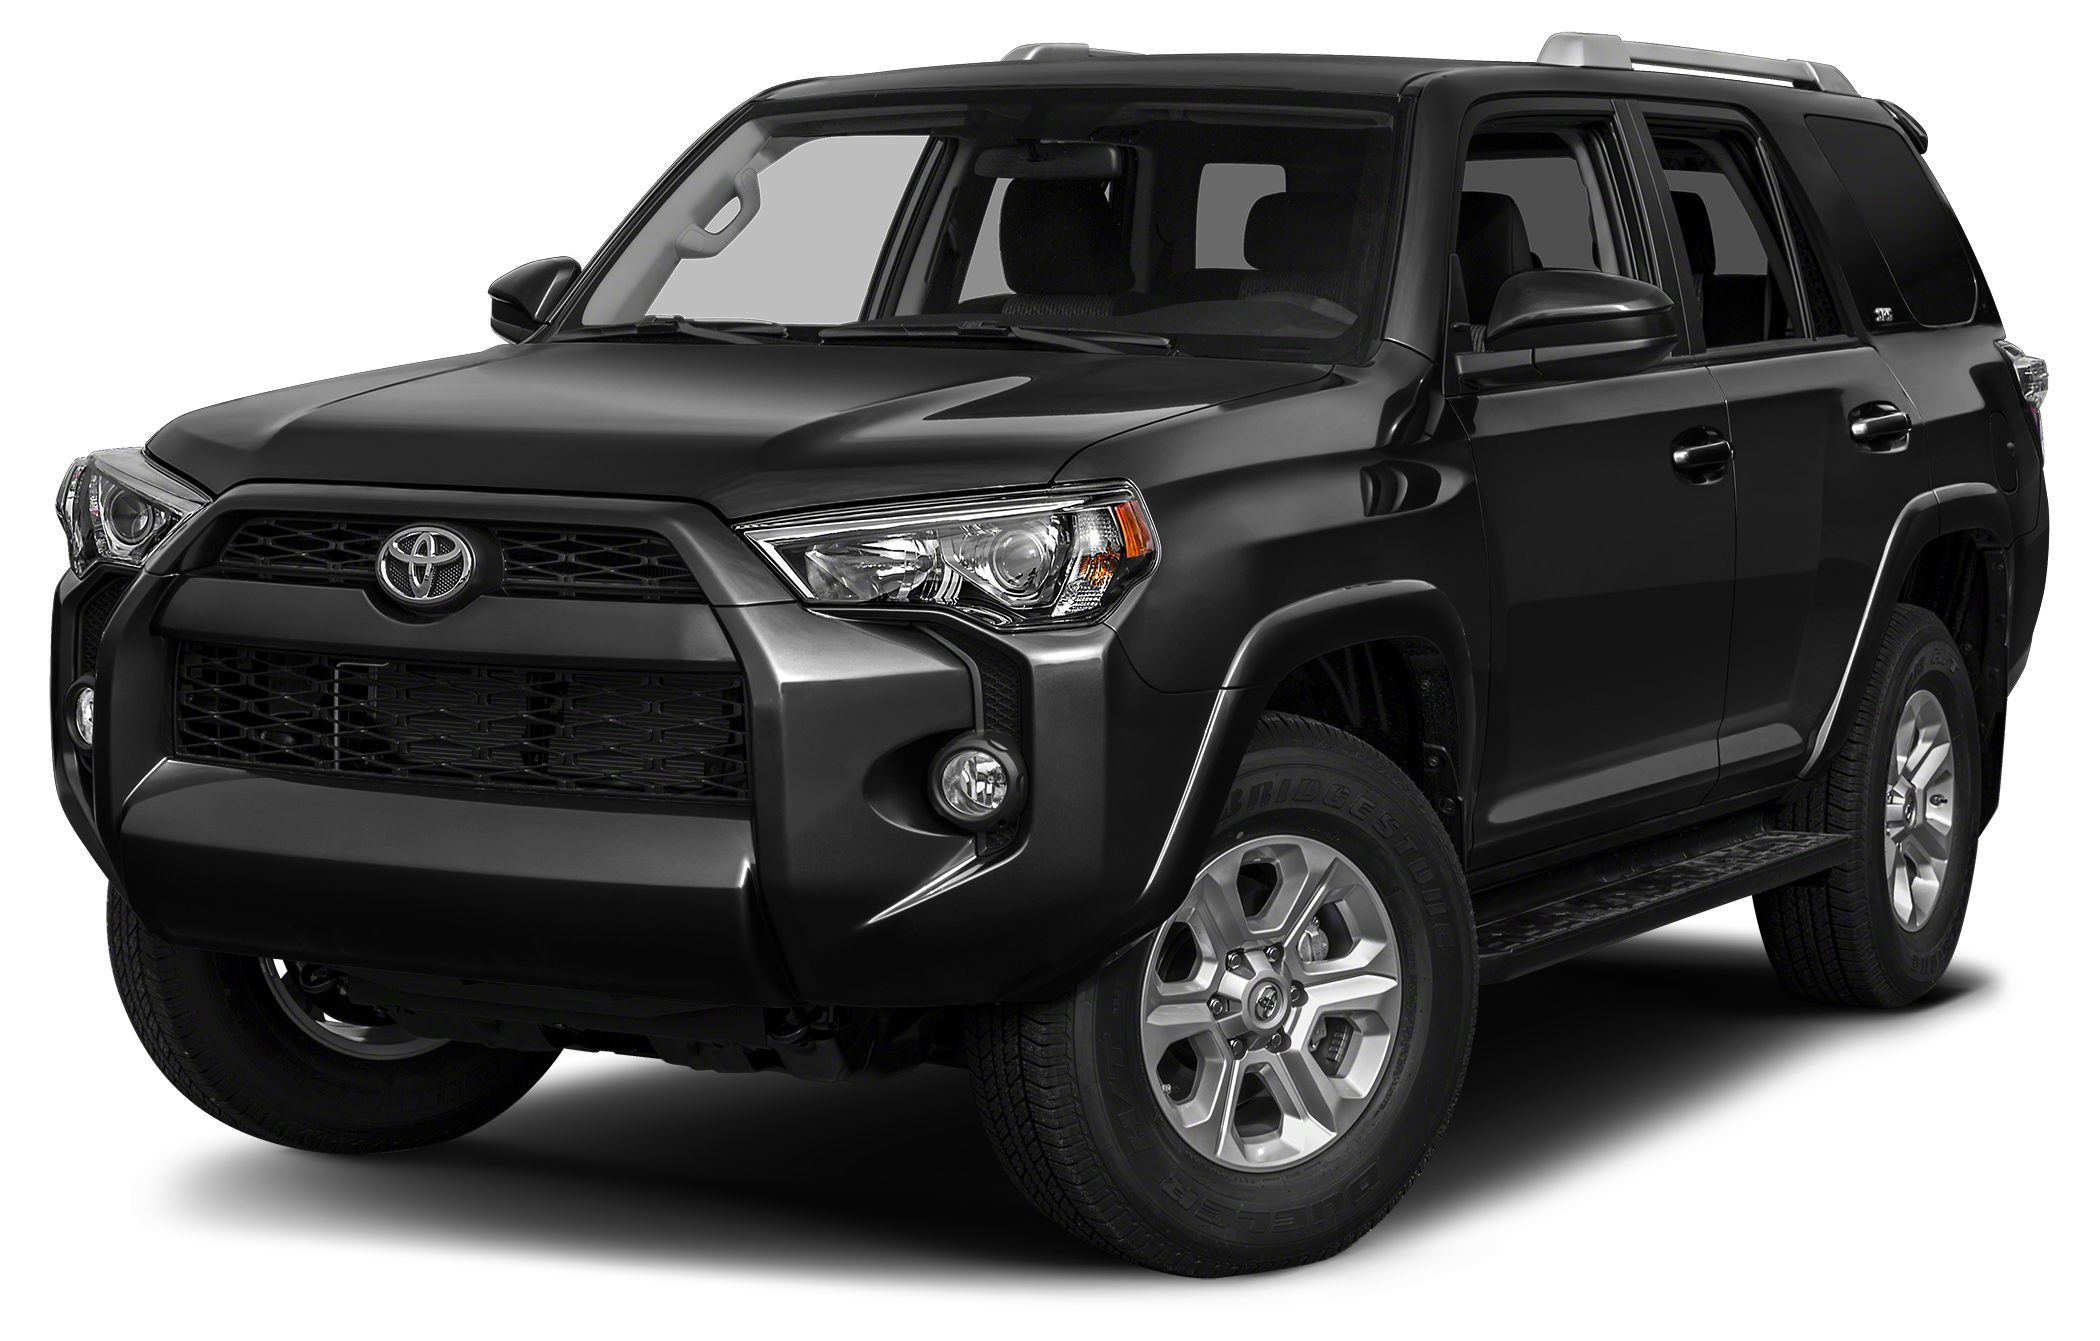 2015 Toyota 4Runner SR5 Miles 6Color Attitude Black Metallic Stock T40756 VIN JTEBU5JR6F52135